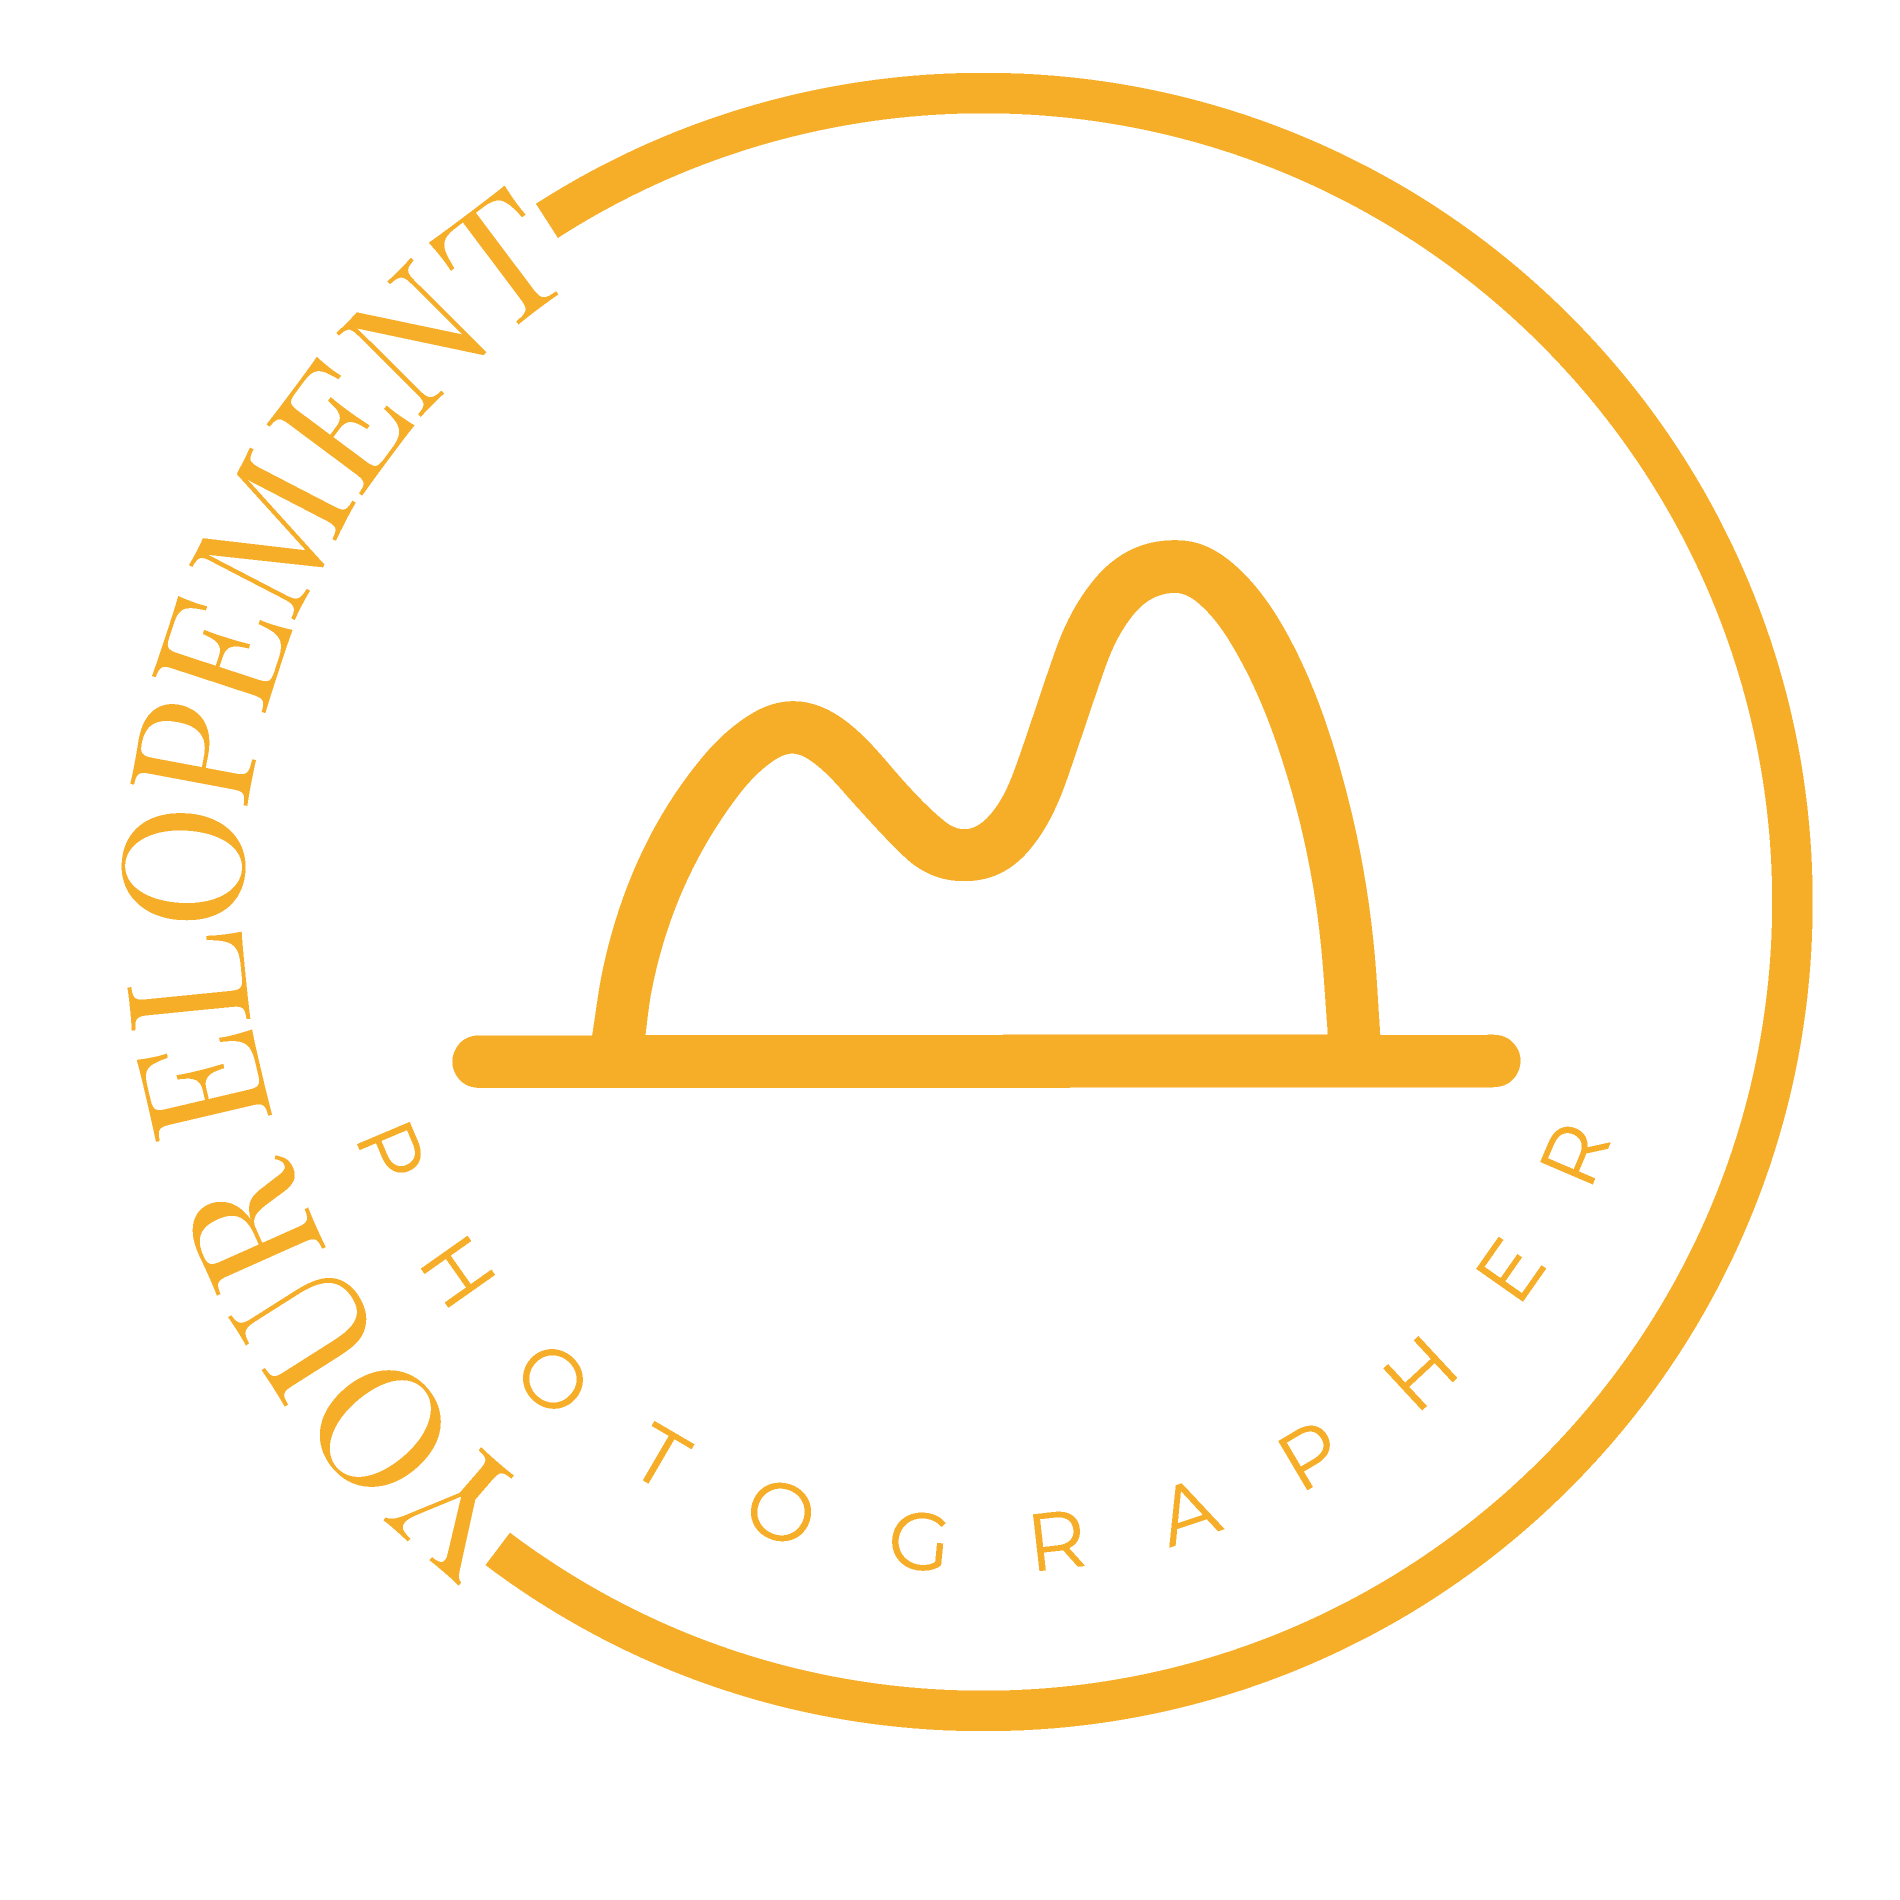 Your elopement photographer logo